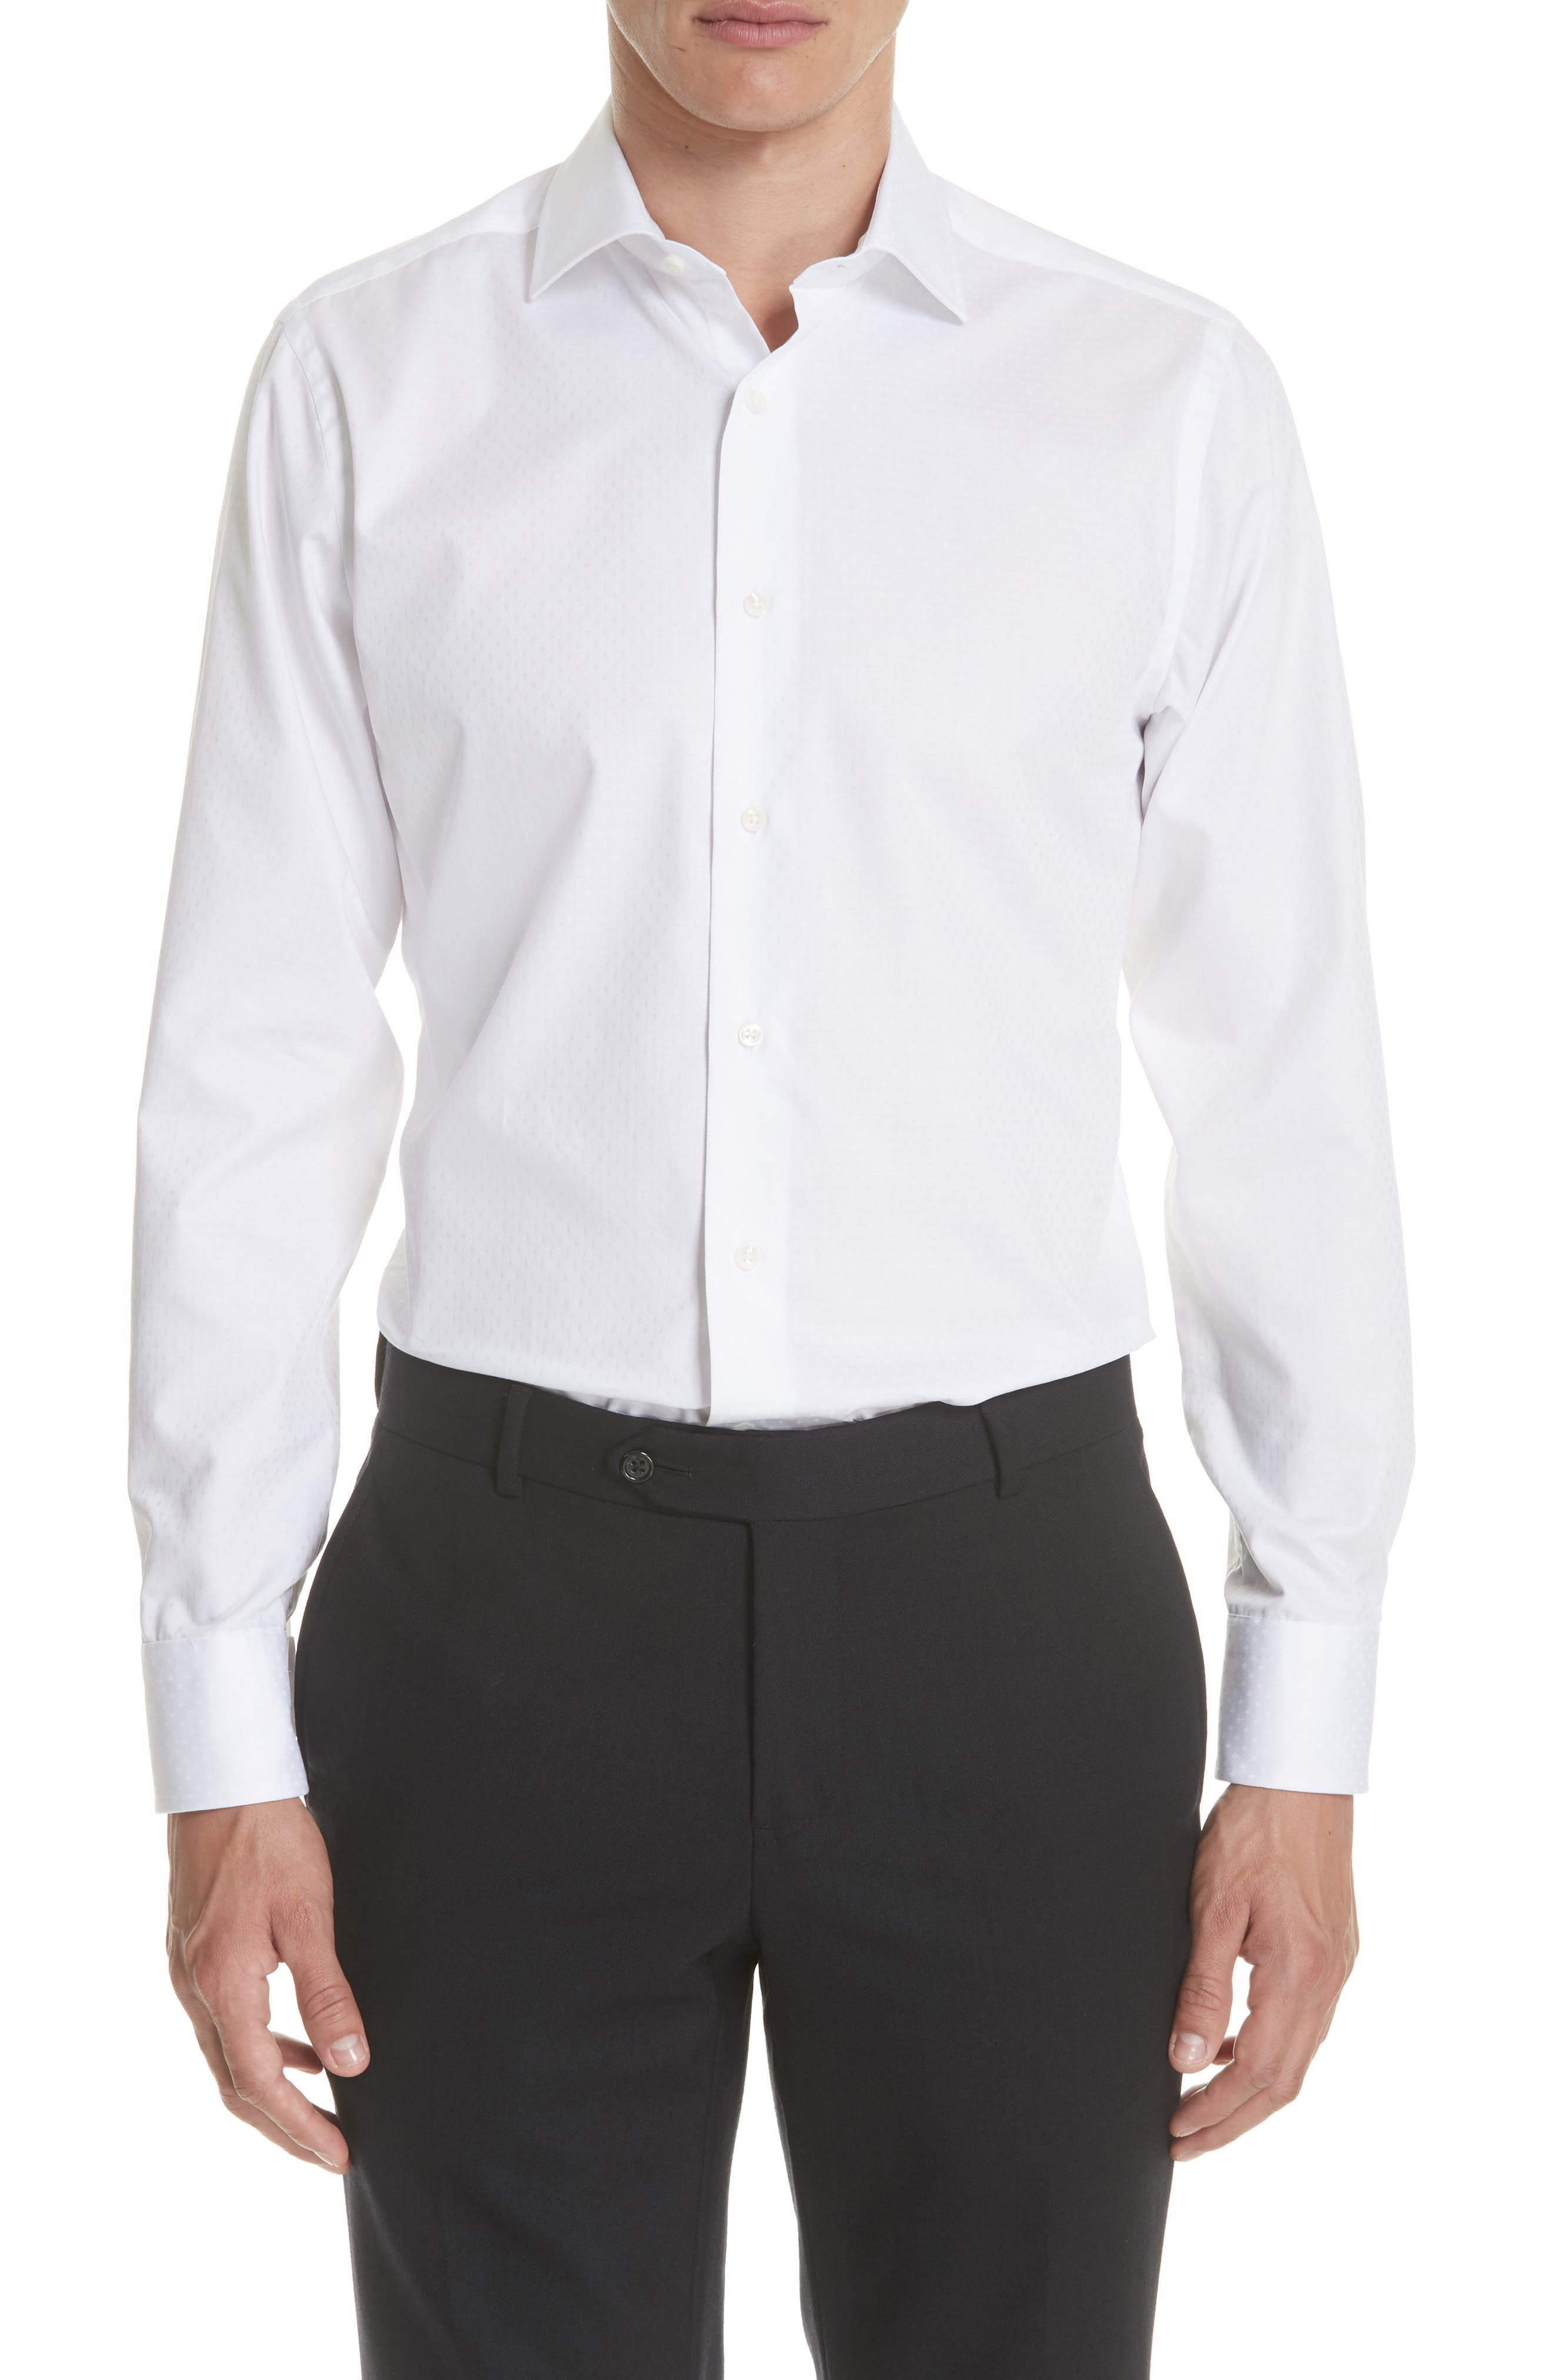 CANALI Regular Fit Solid Dress Shirt, Main, color, 100